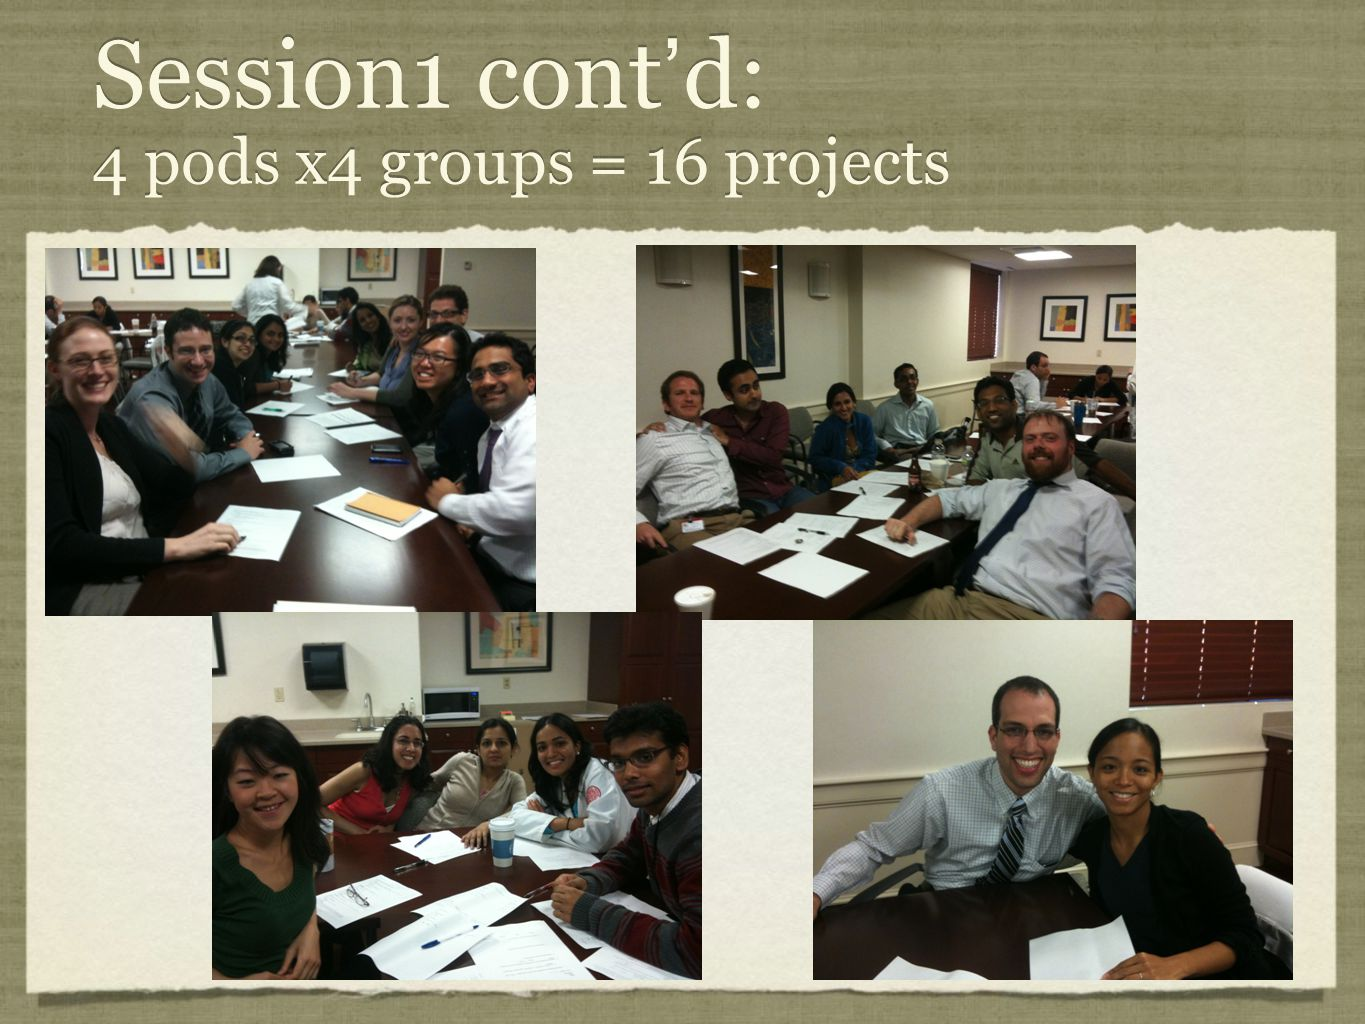 Session1 cont'd: 4 pods x4 groups = 16 projects